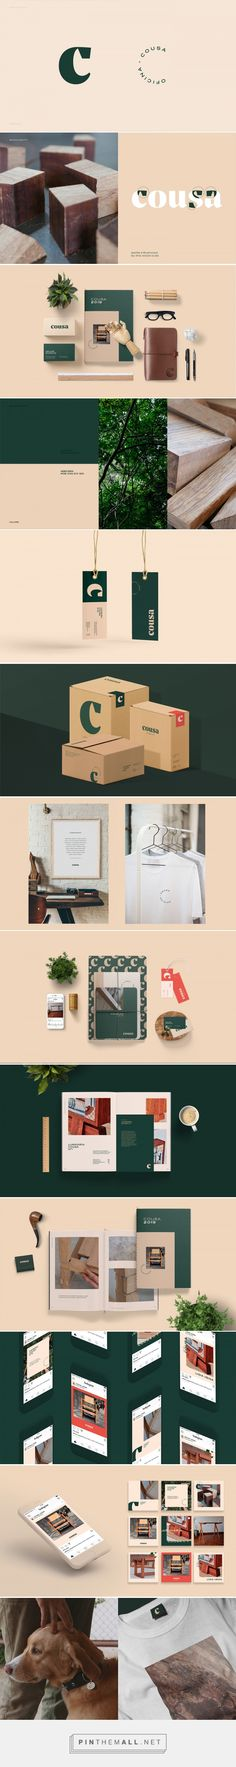 Branding inspiration, identity and logo design Packaging Design, Branding Design, Logo Design, Spice Logo, Minimalist Graphic Design, Visual Identity, Brand Identity, Photography For Beginners, Stationery Design